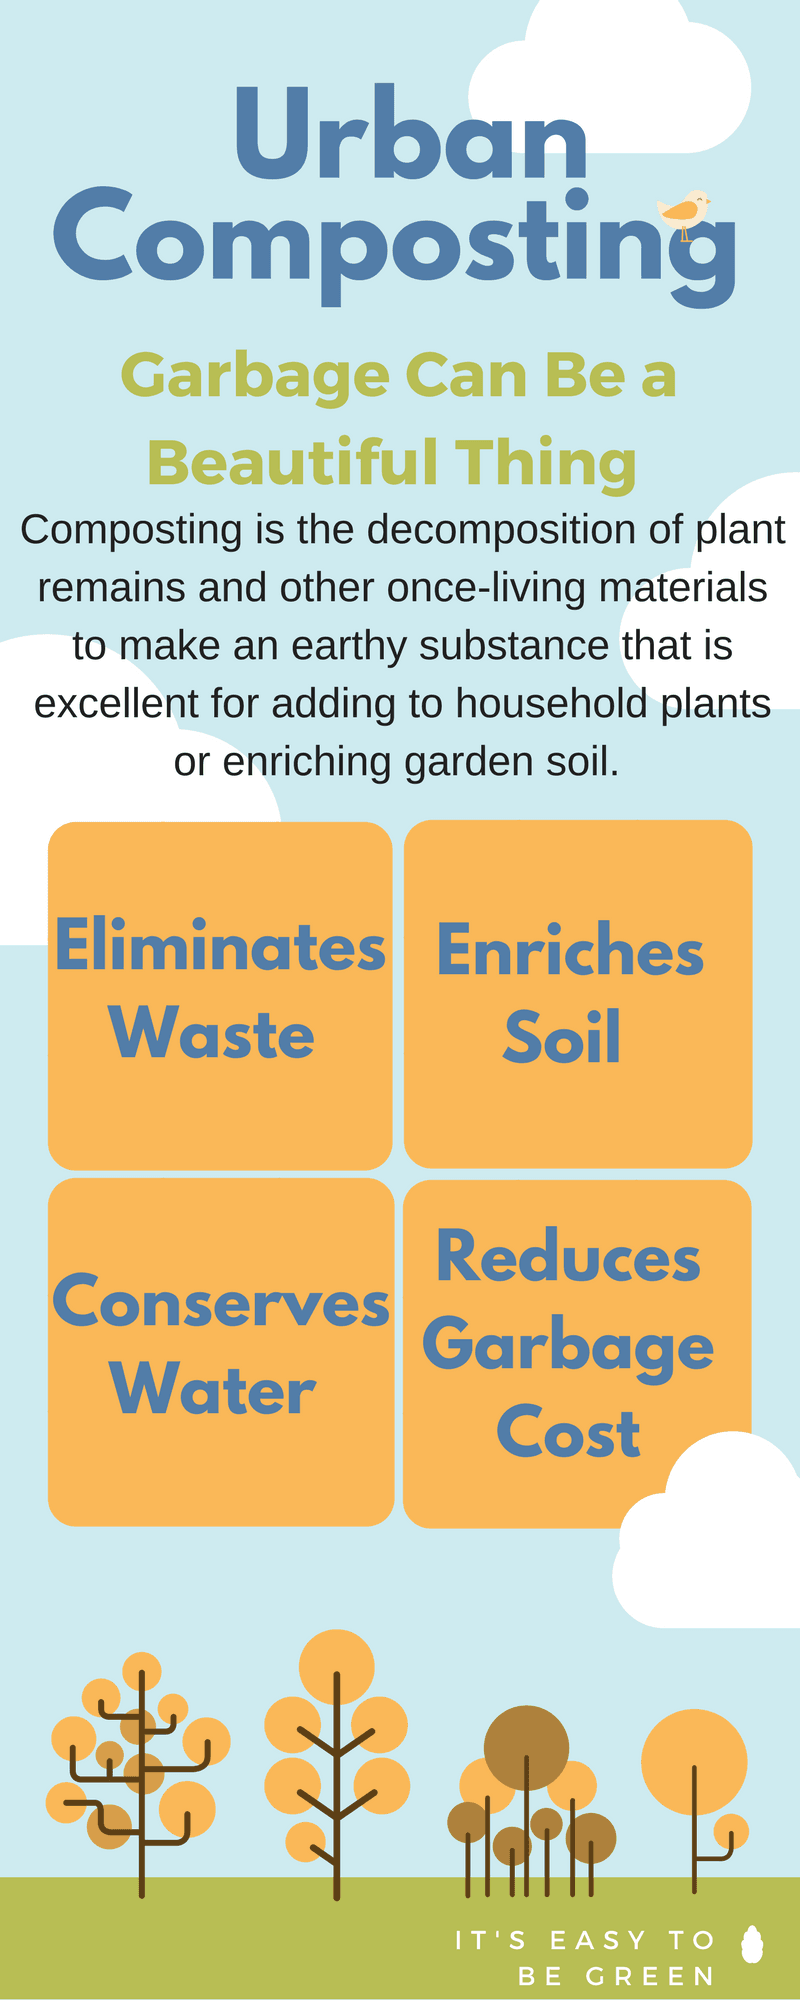 Urban Composting Infographic